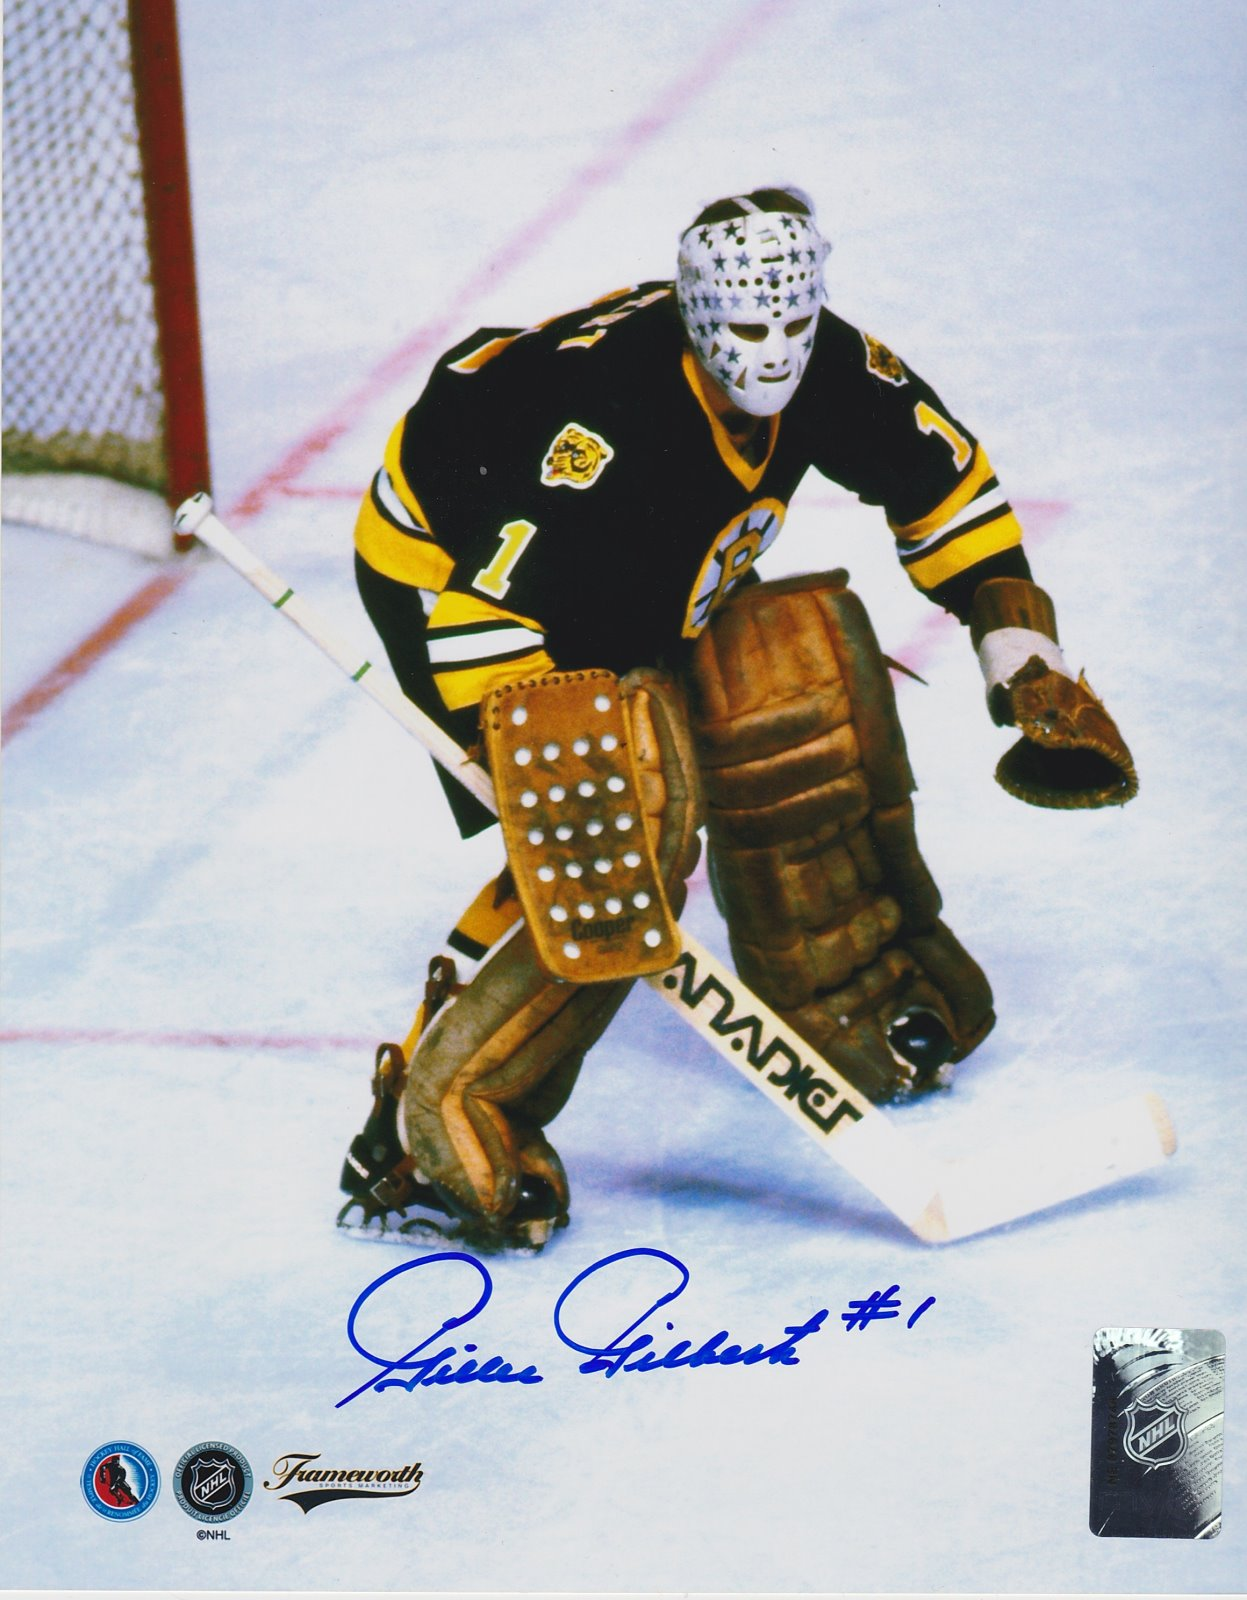 Gilles Gilbert Autograph 8x10 Color photo Boston Bruins